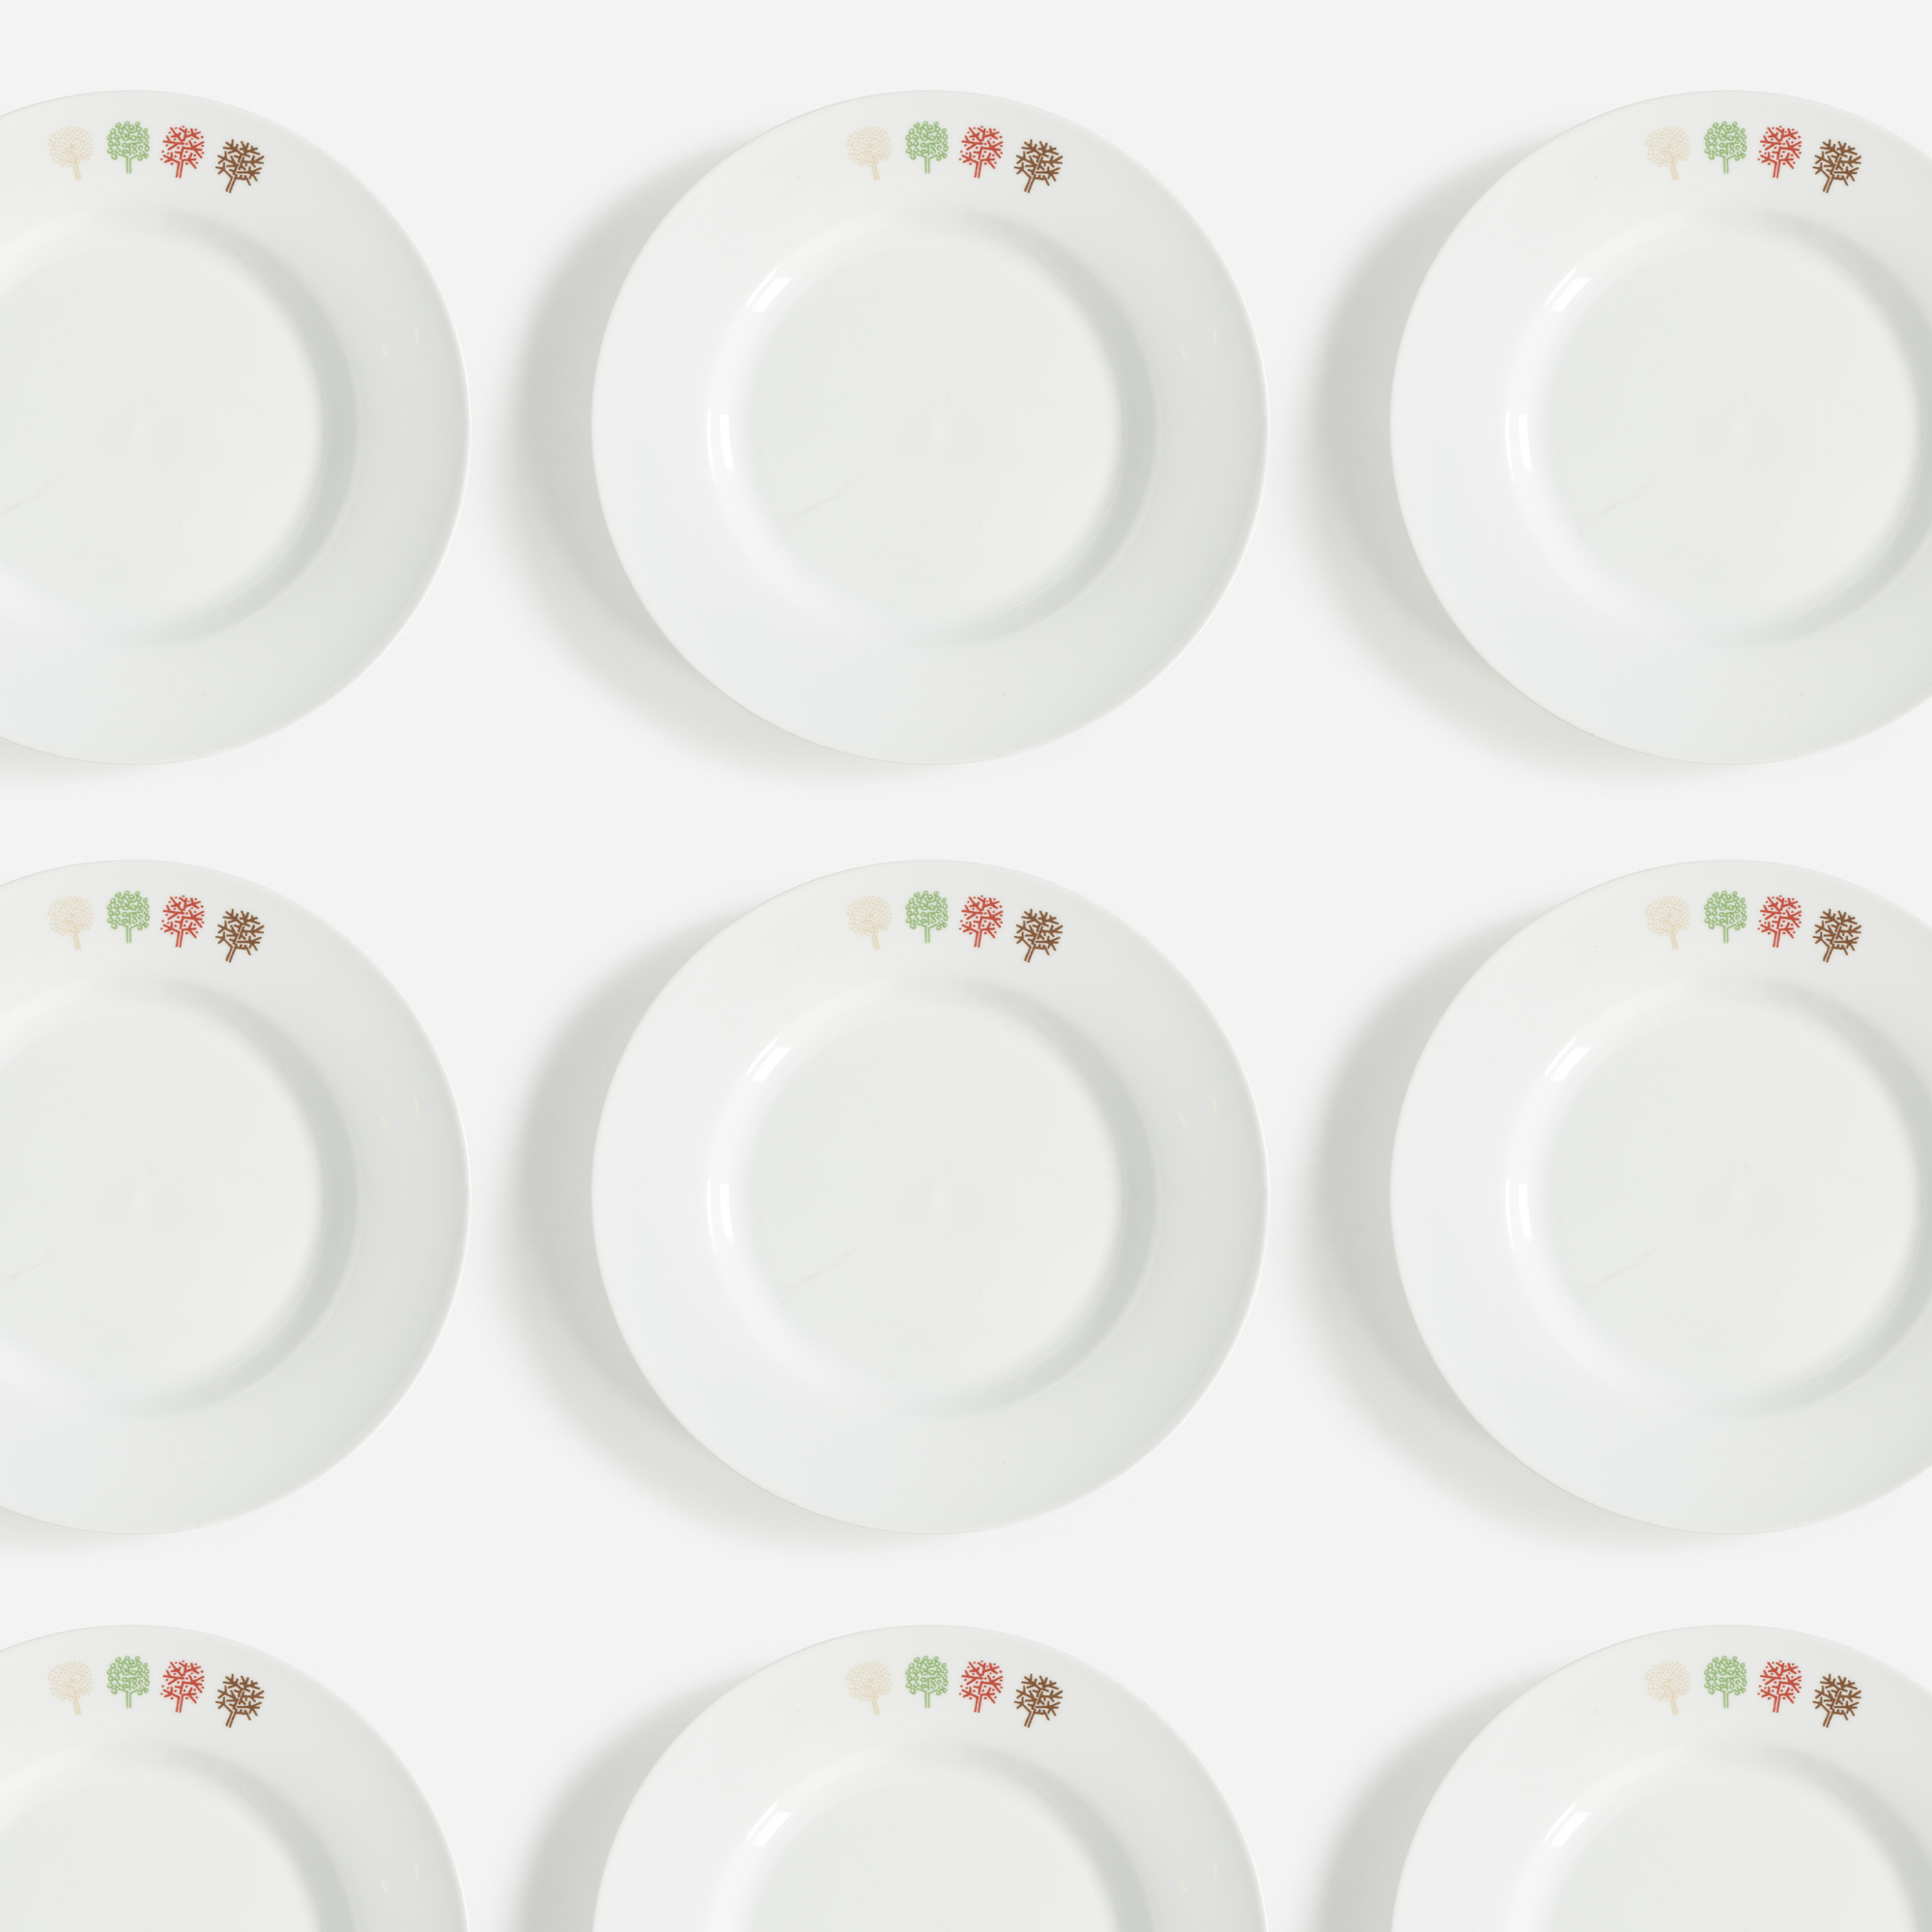 306:  / Collection of Four Seasons plates, set of twenty-four (1 of 1)